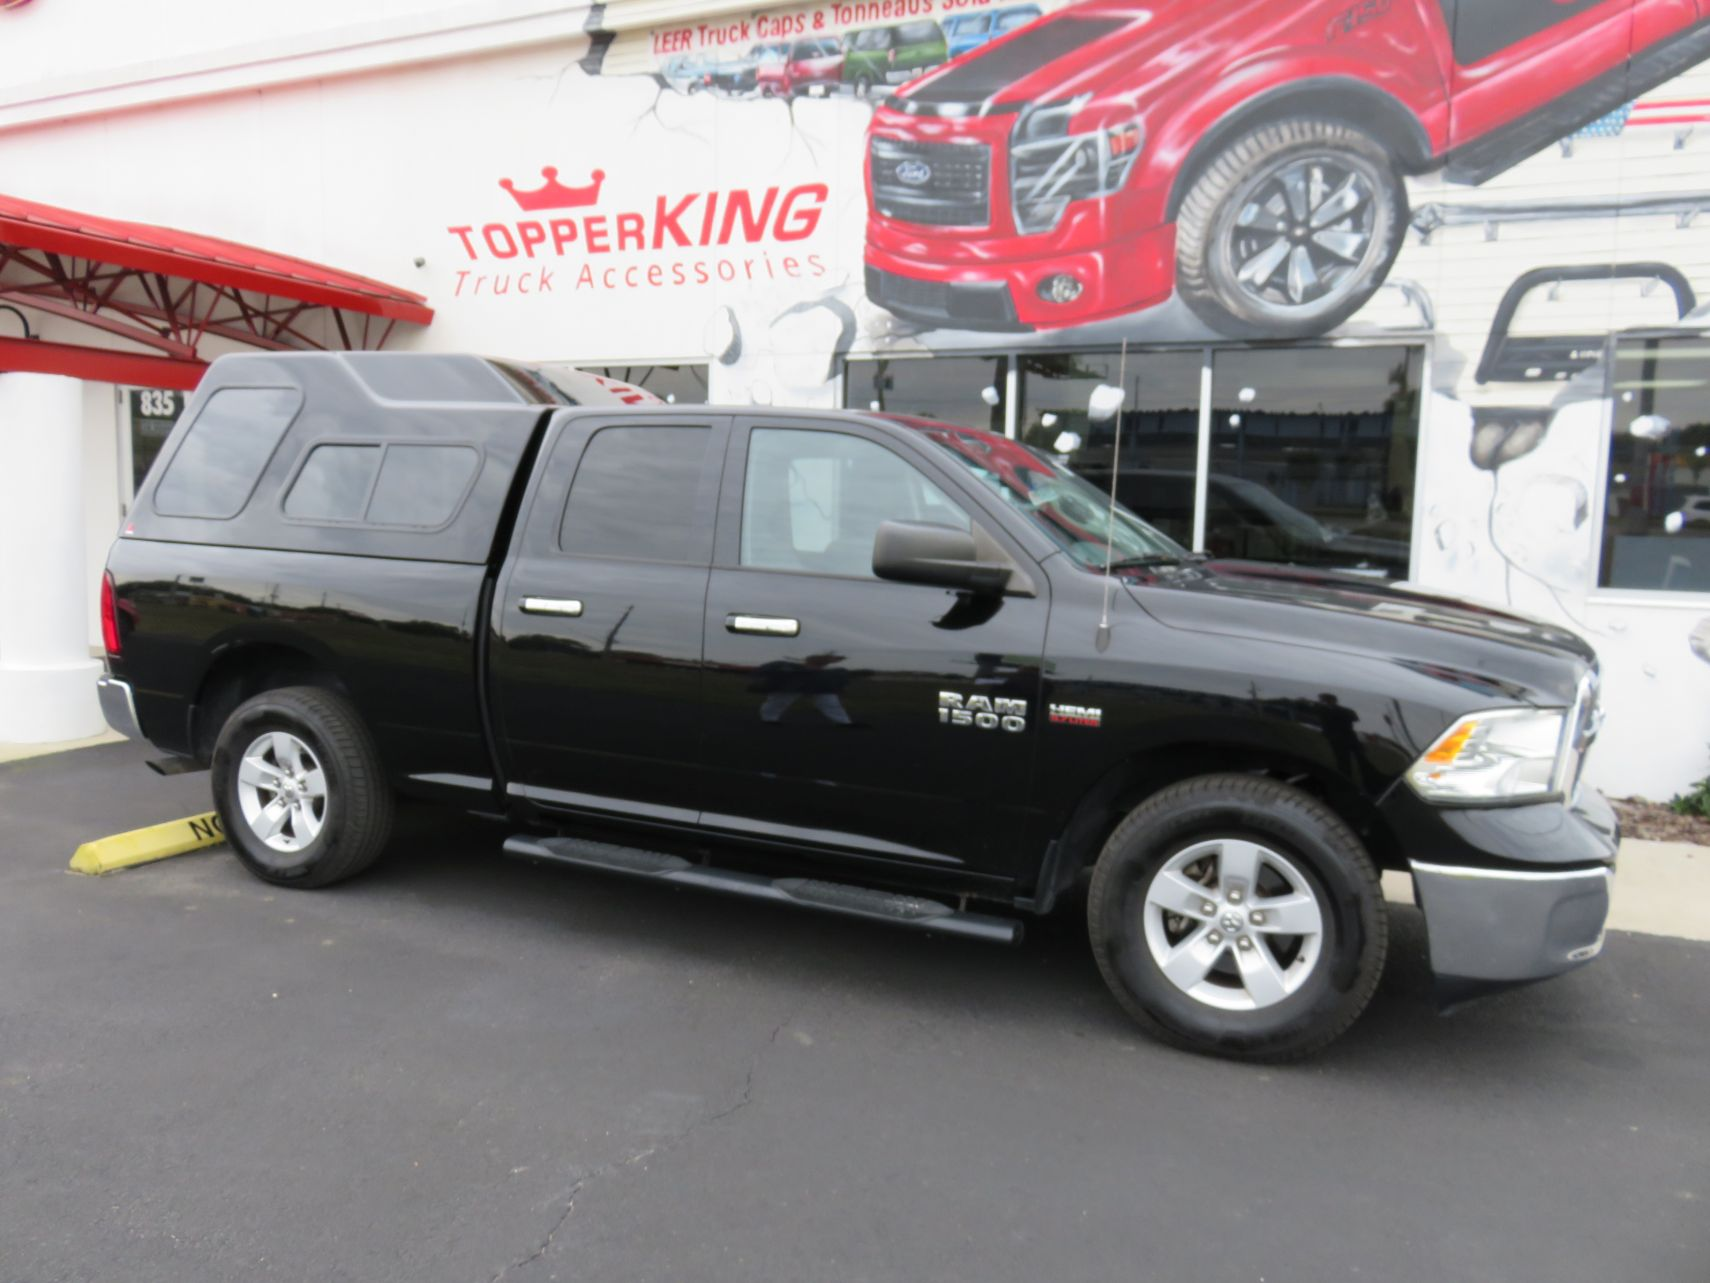 2018 Black Dodge Ram 1500 Leer 122, Nerf Bars, Tint, Custom Hitch by TopperKING in Brandon, FL 813-689-2449 or Clearwater, FL 727-530-9066. Call today!